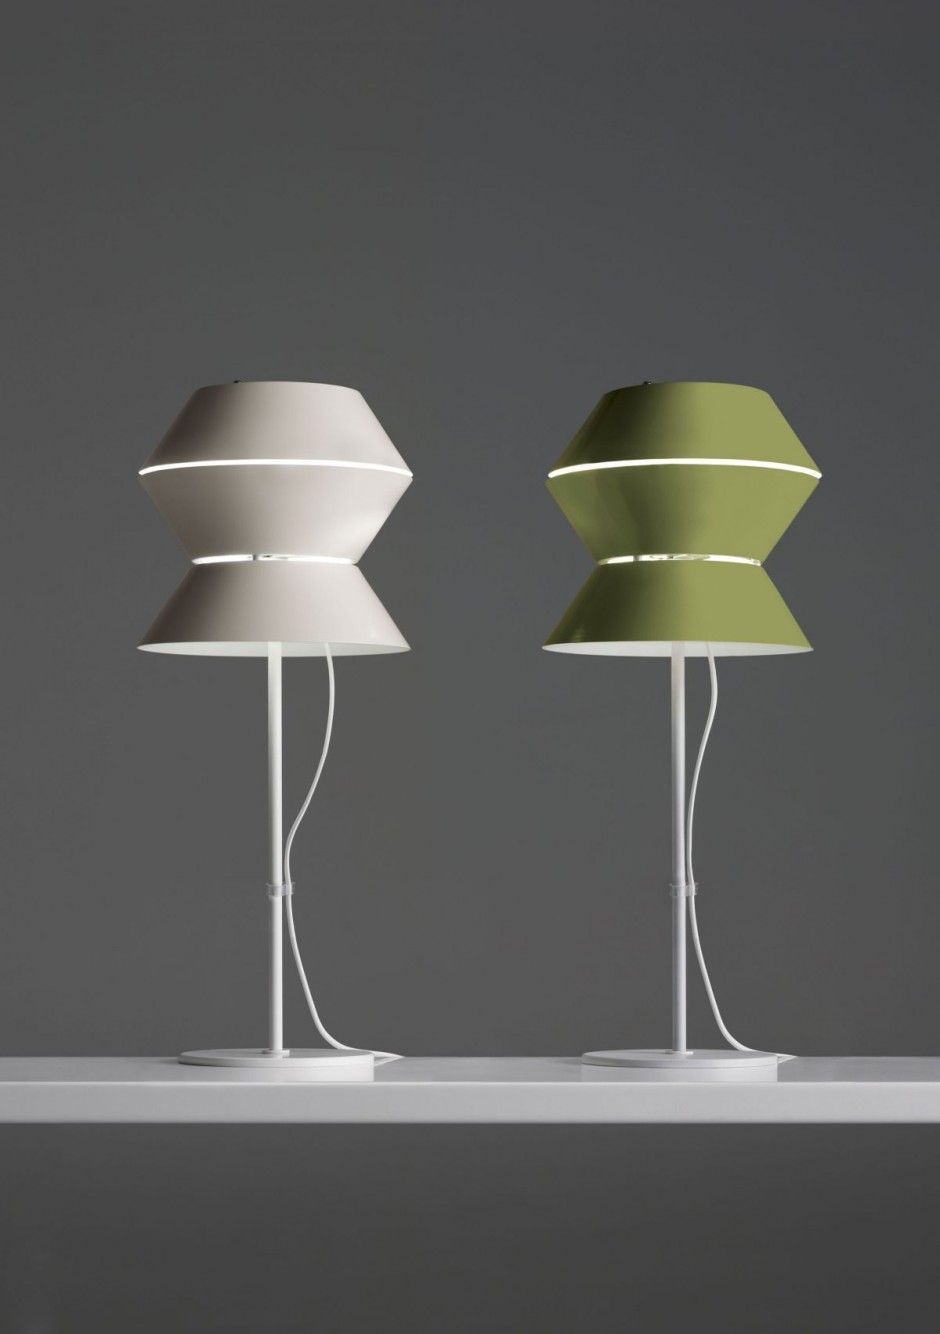 Family of lamps, Artù hanging lamps by Carlo Tamborini for ModoLuce